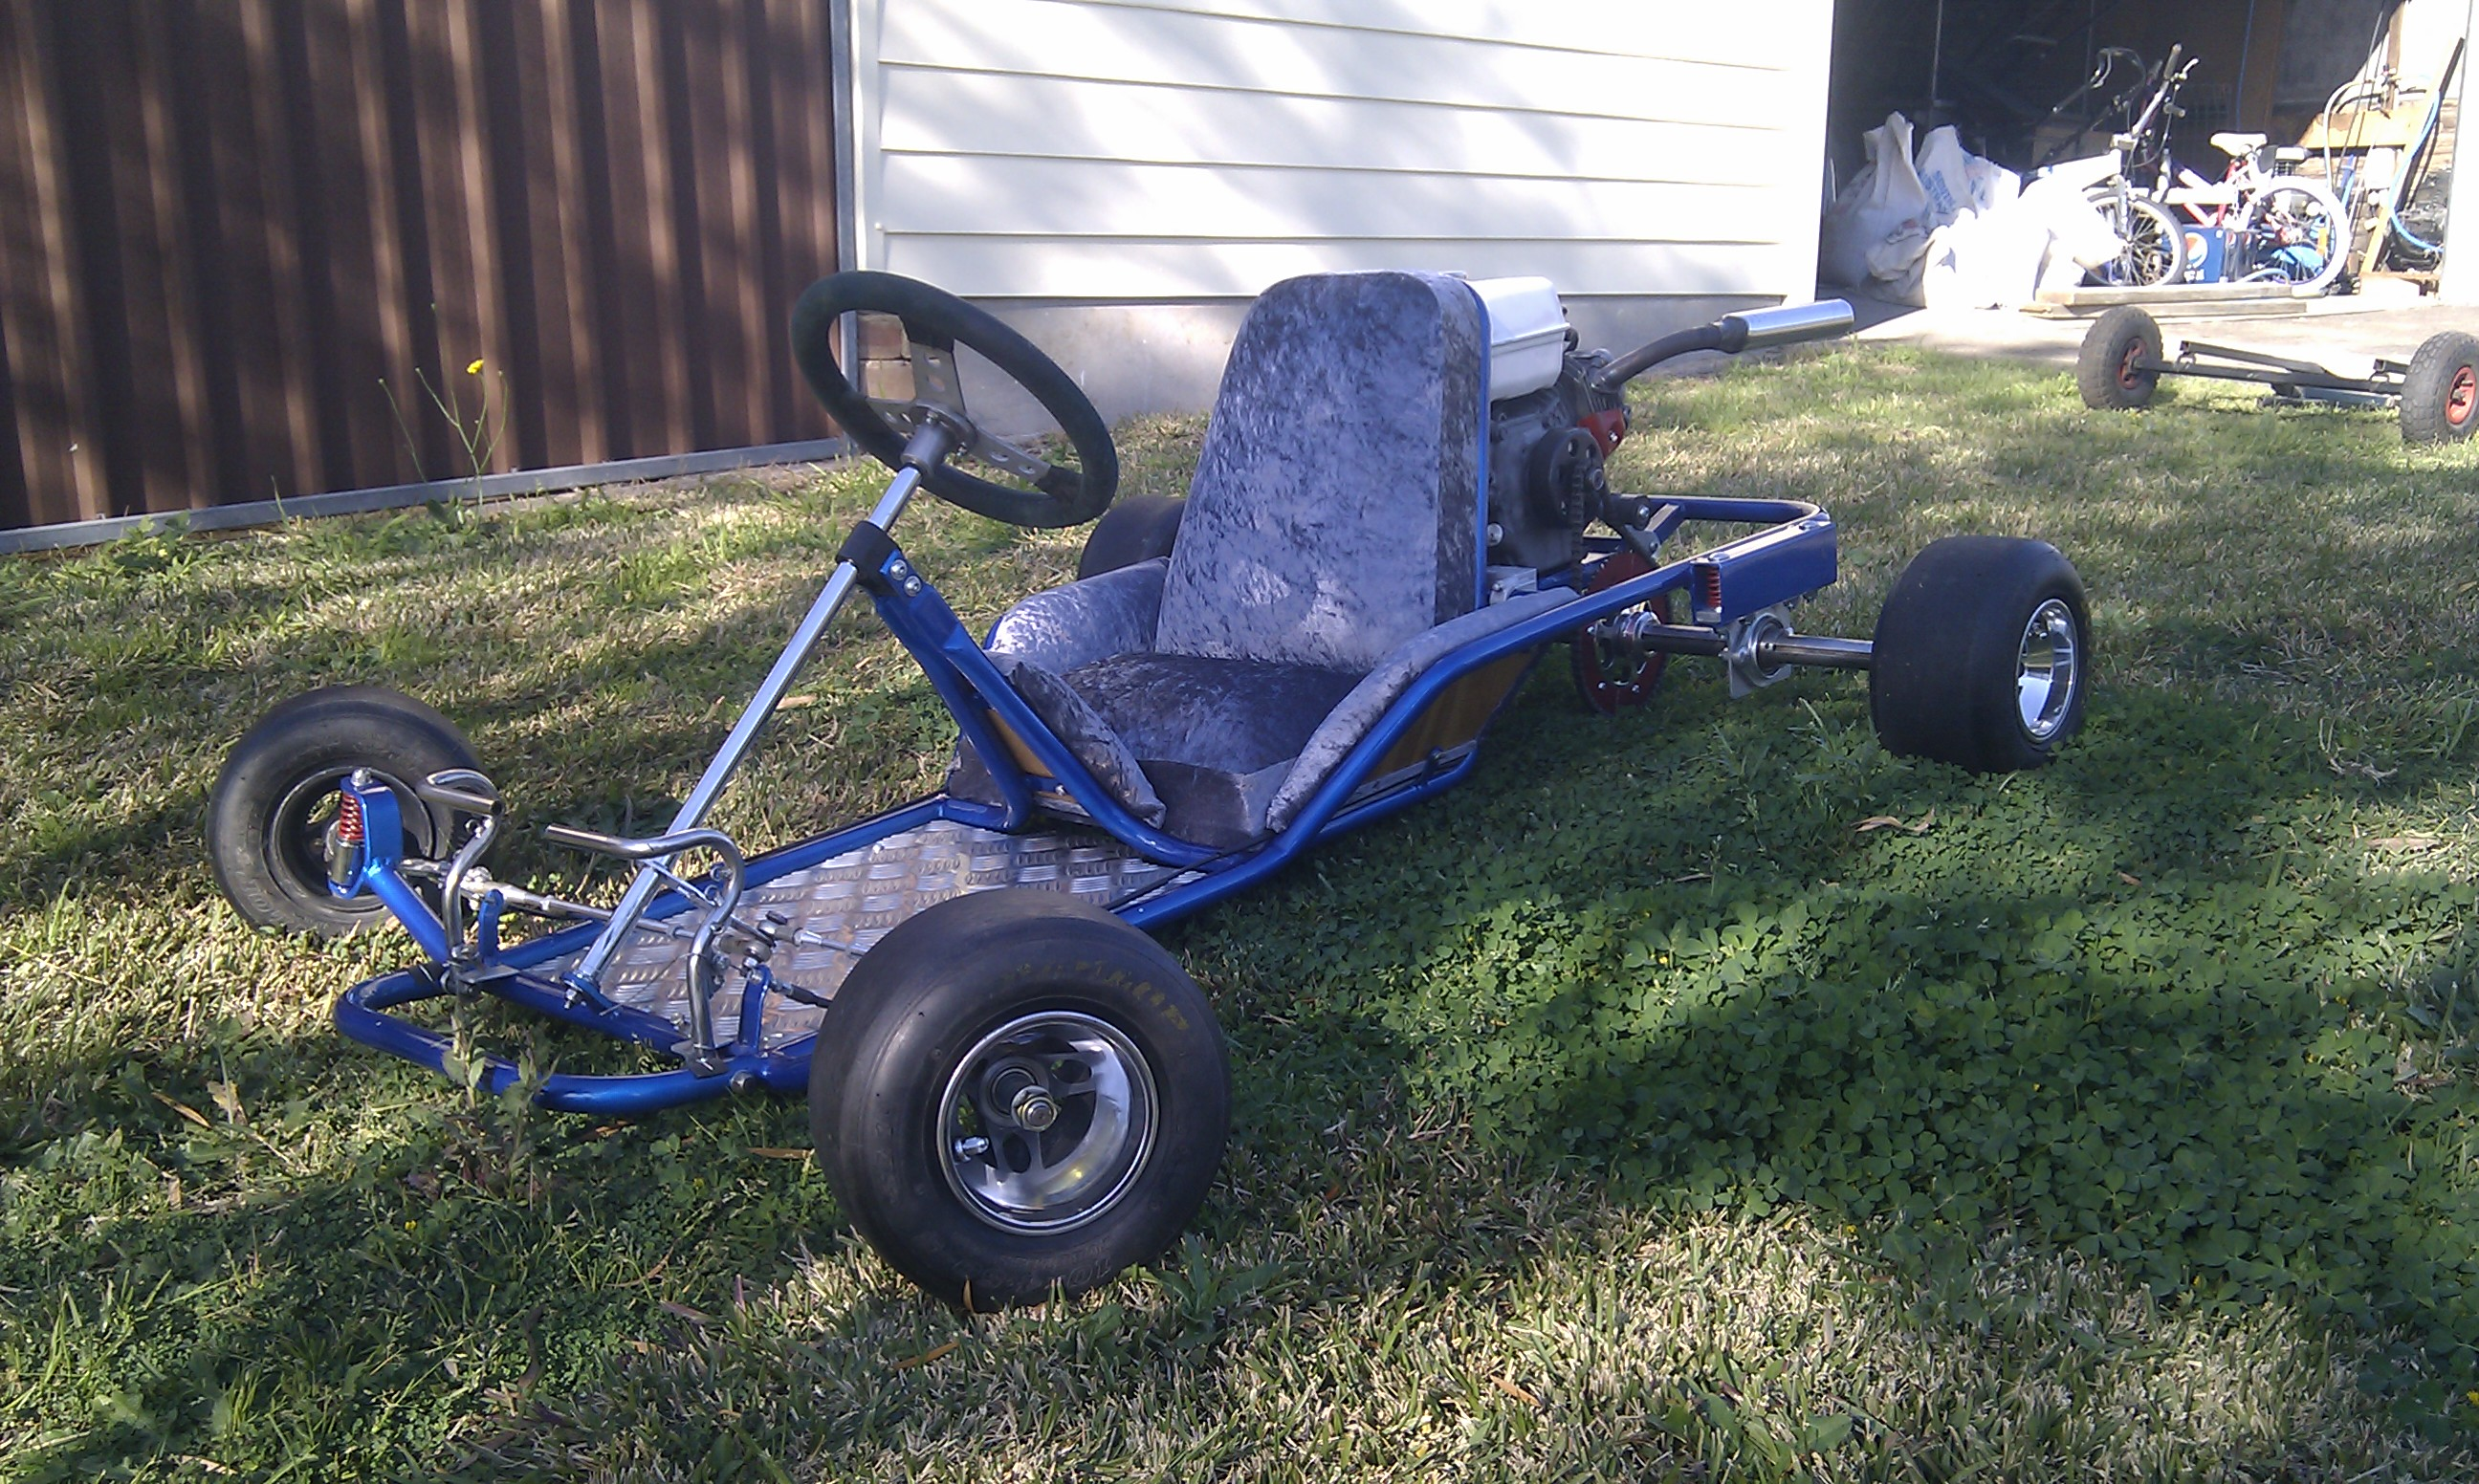 2015 Go Kart Build Off Announcement - KartFab.com